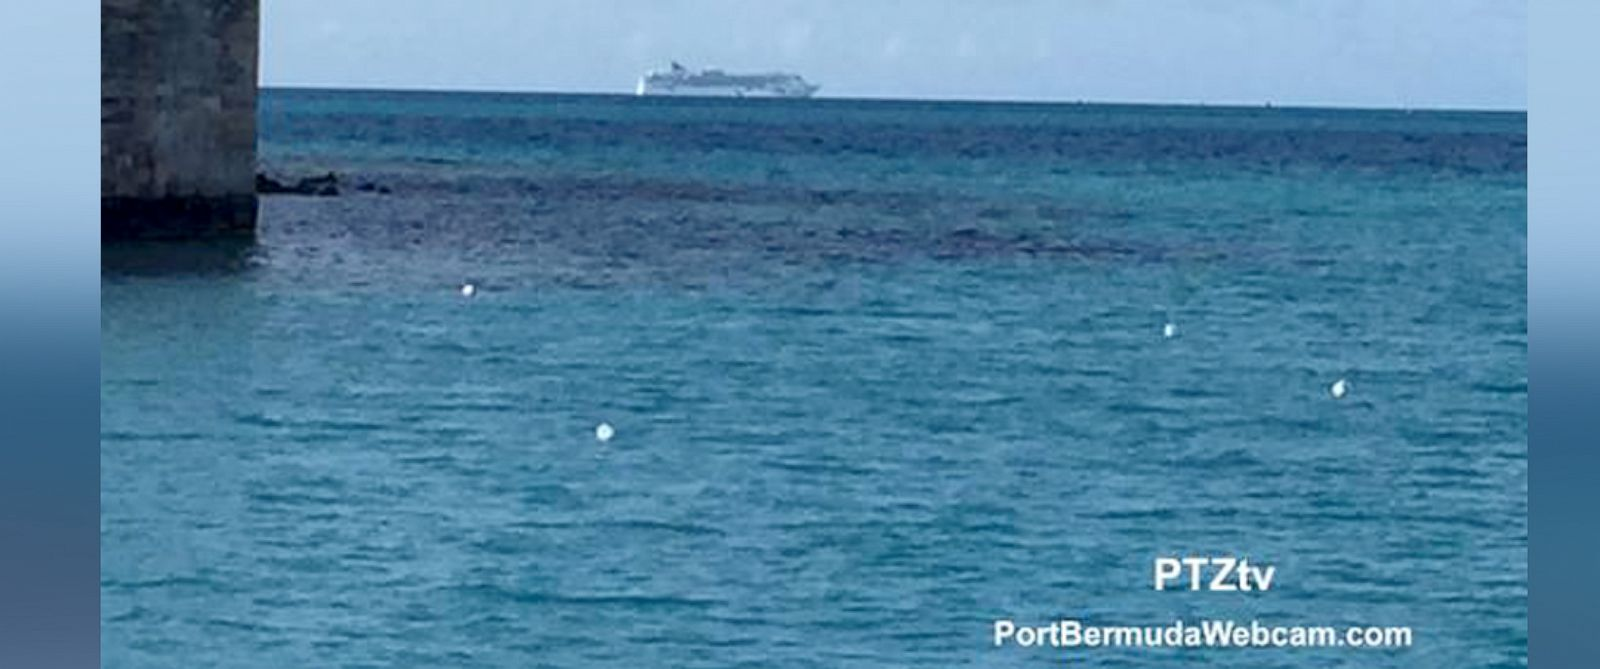 PHOTO: The Norwegian Dawn is seen on May 19, 2015 in this grab from a lifestream provided by PortBermudaWebcam.com